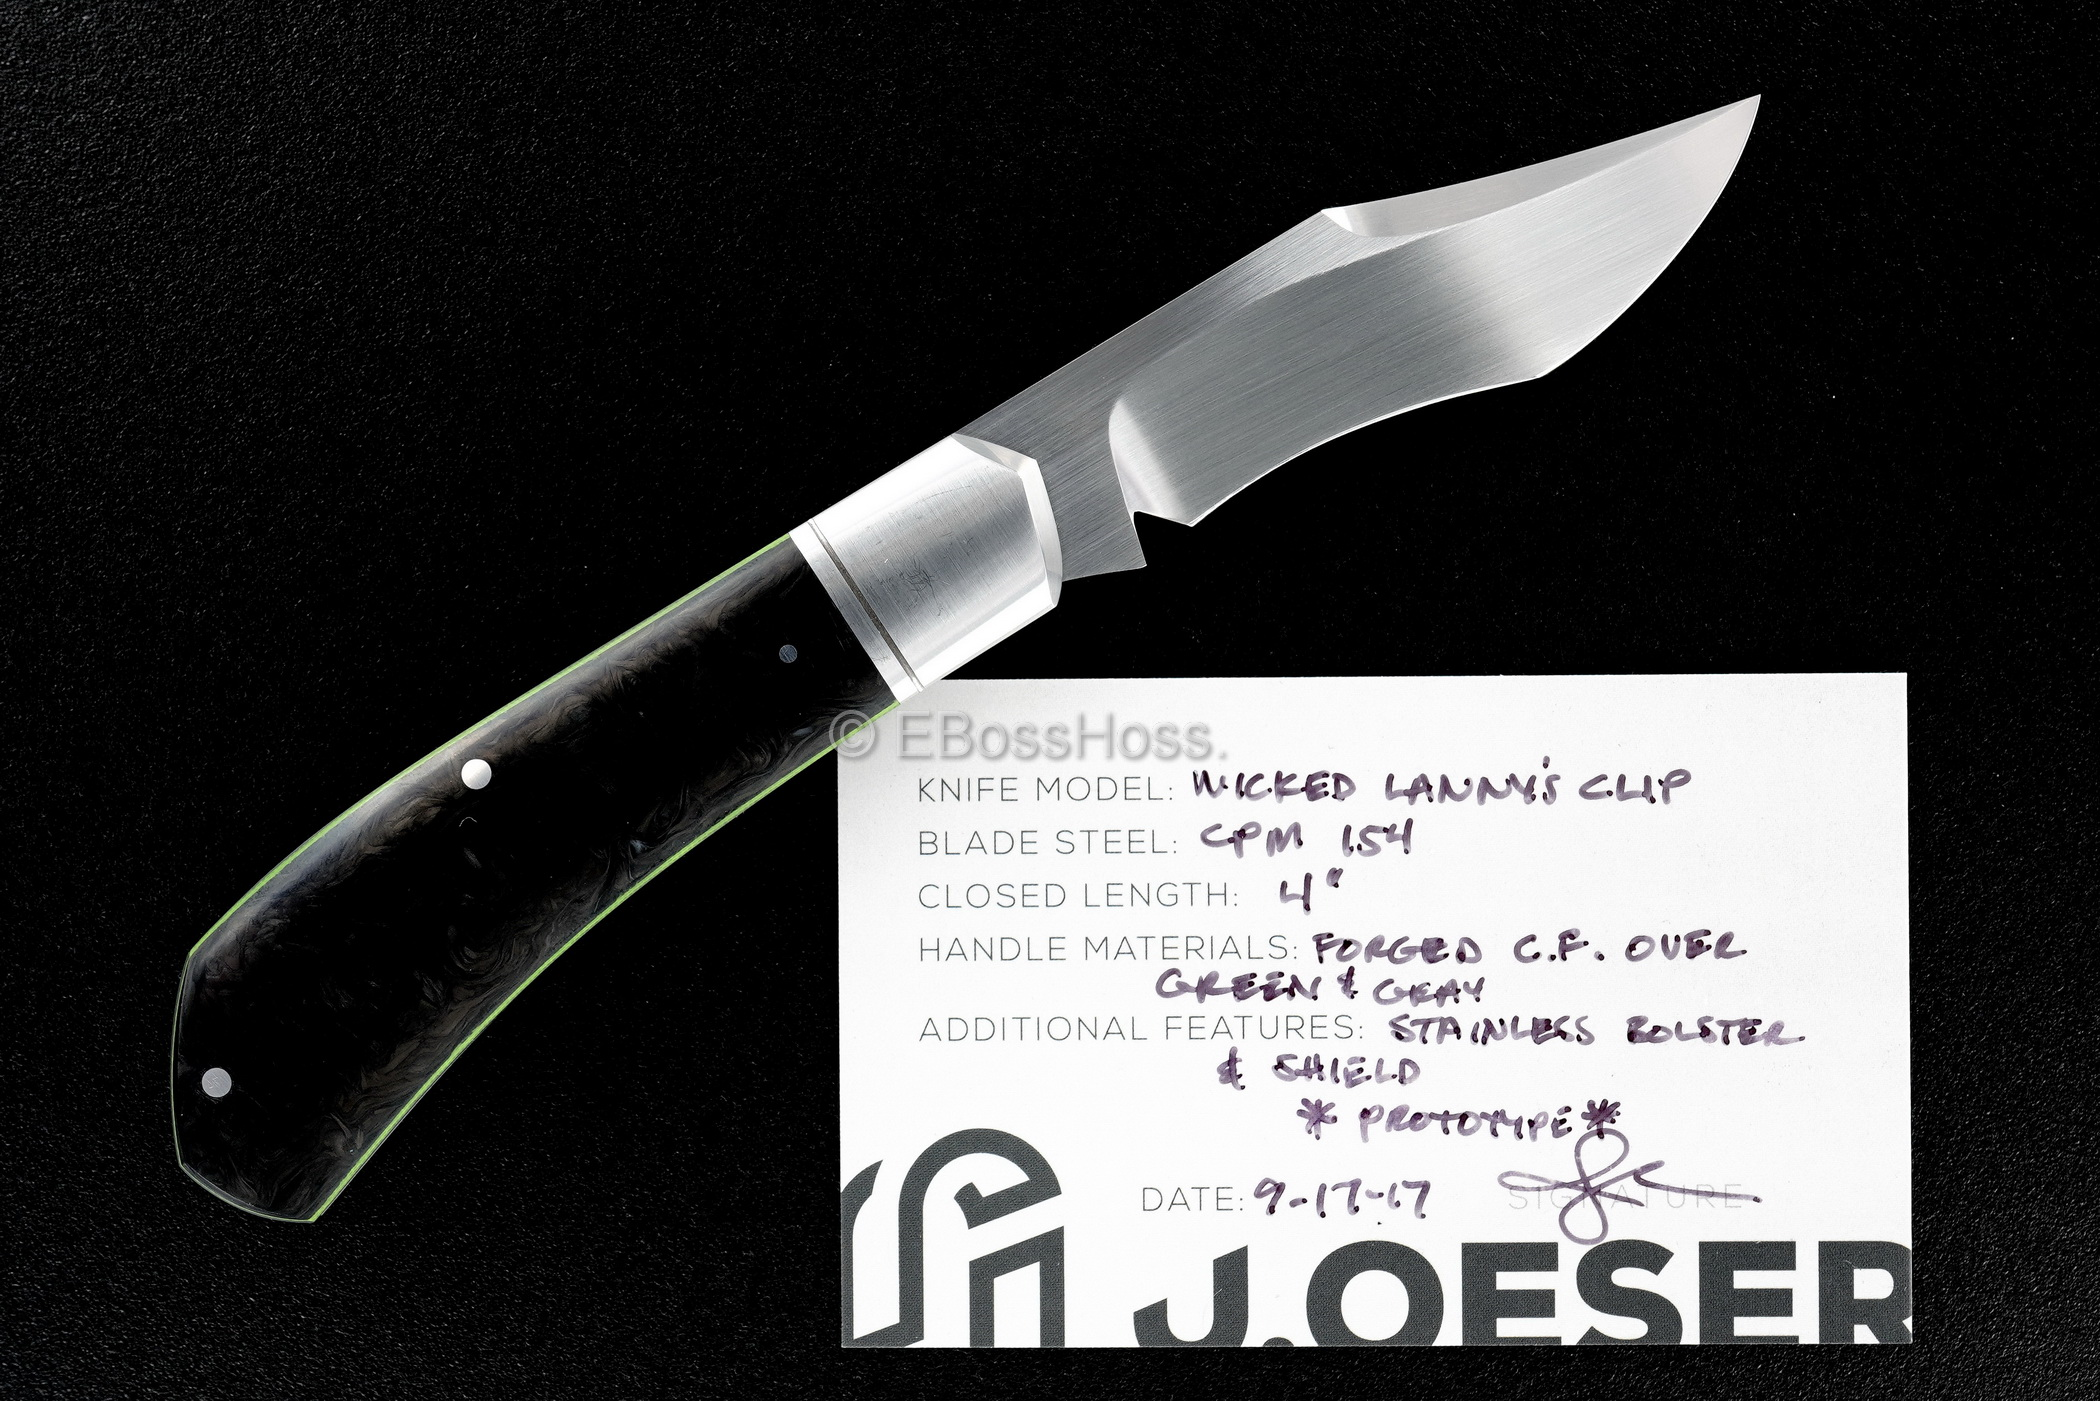 Jared Oeser Custom Wicked Lanny's Clip Knife PROTOTYPE